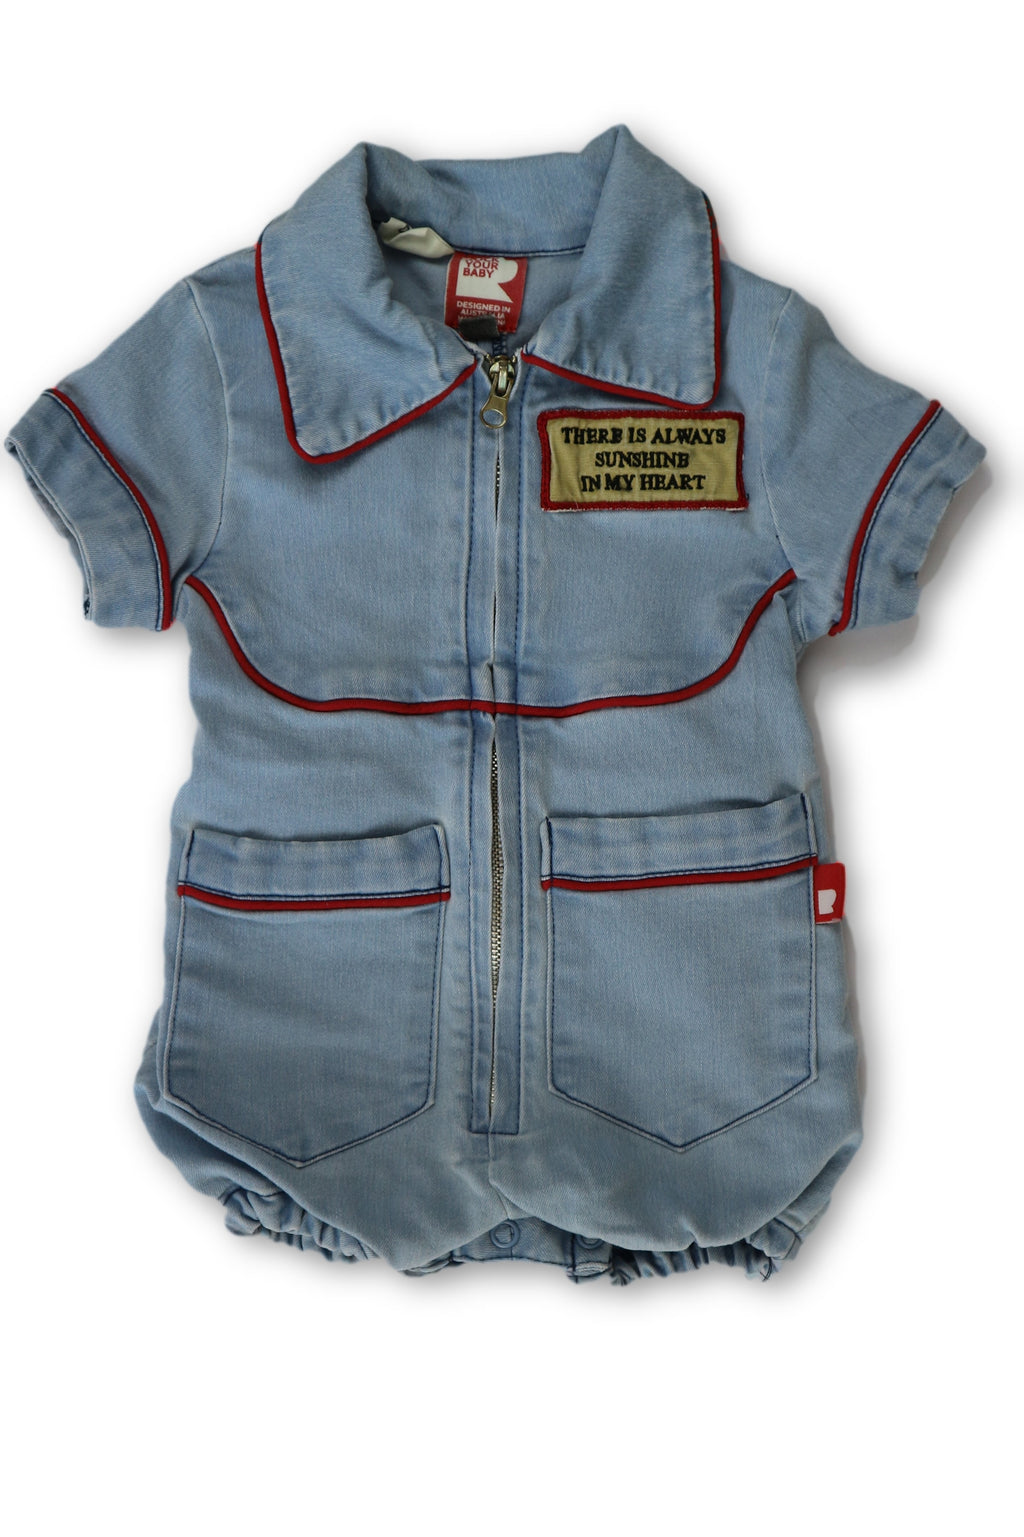 Rock Your Baby Playsuit size 000 - Use-Ta! Preloved Children's Wear Online